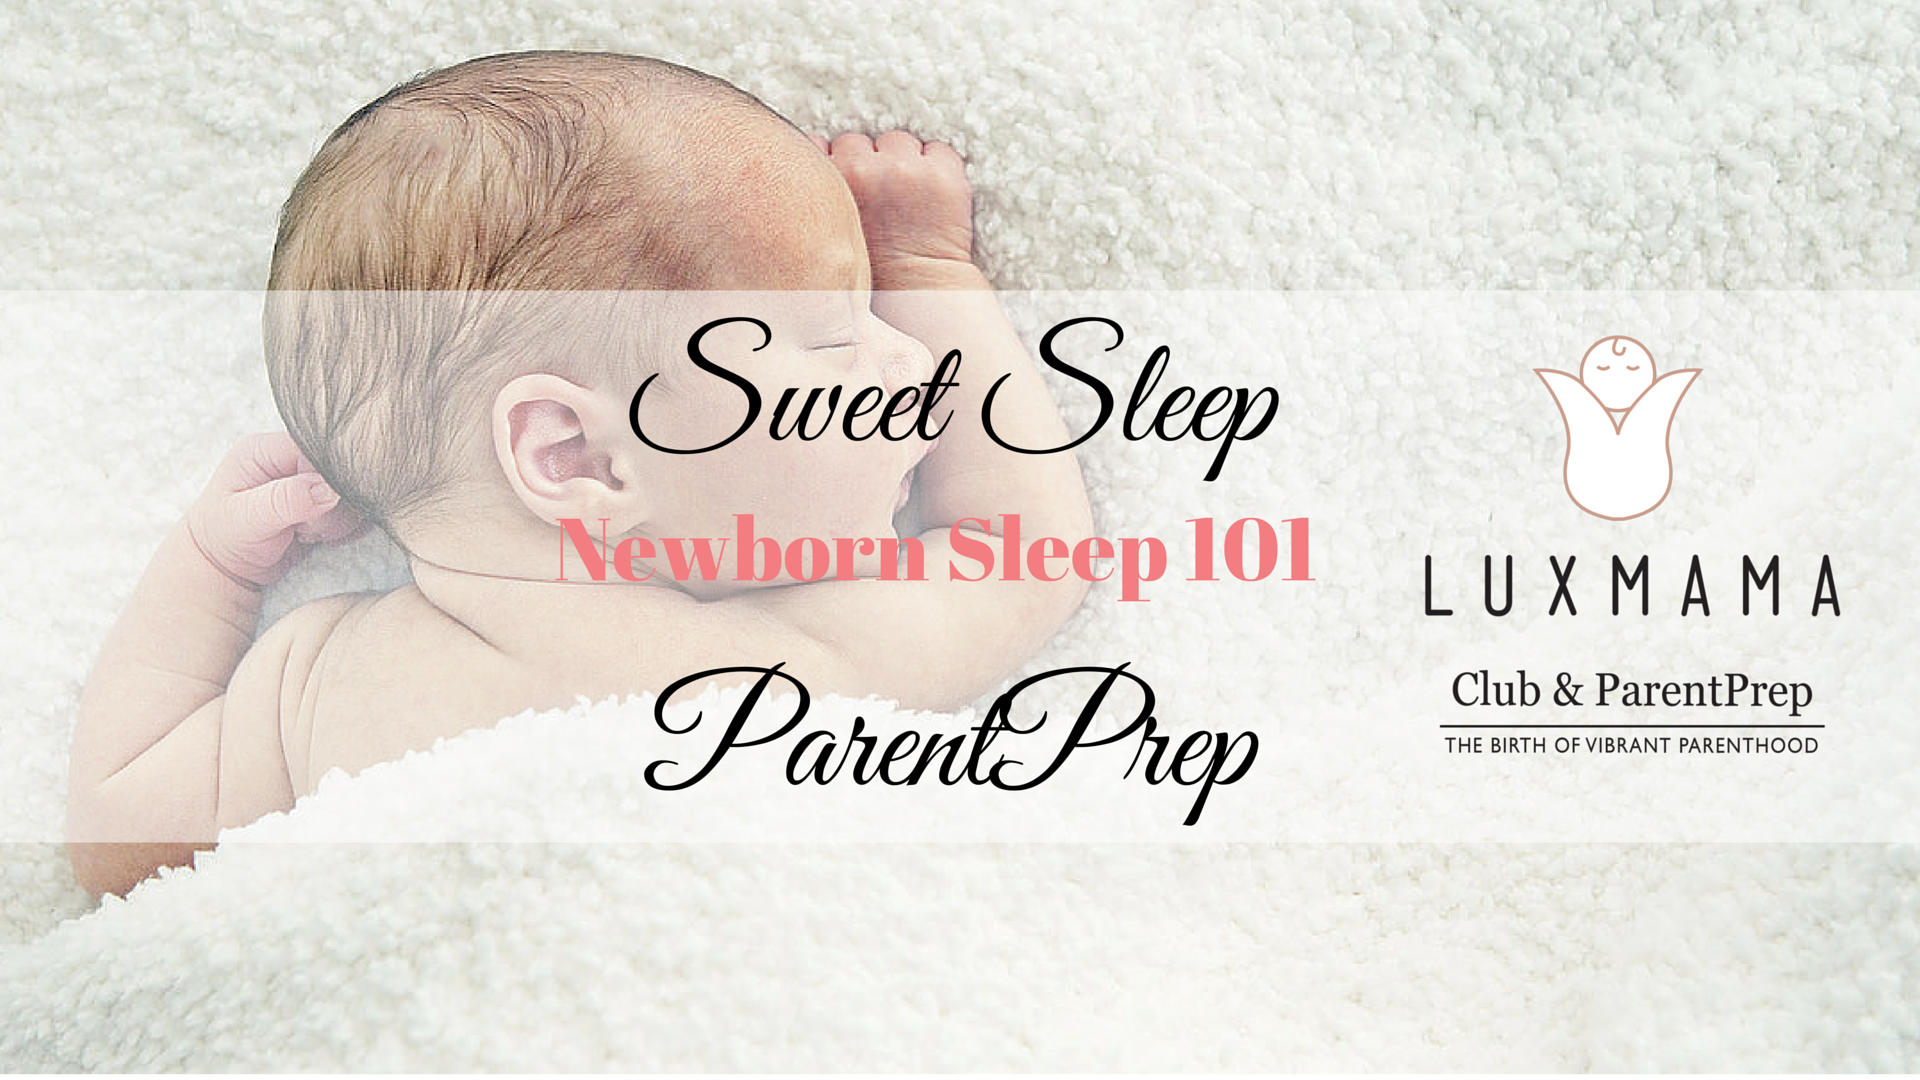 Newborn Sleep 101